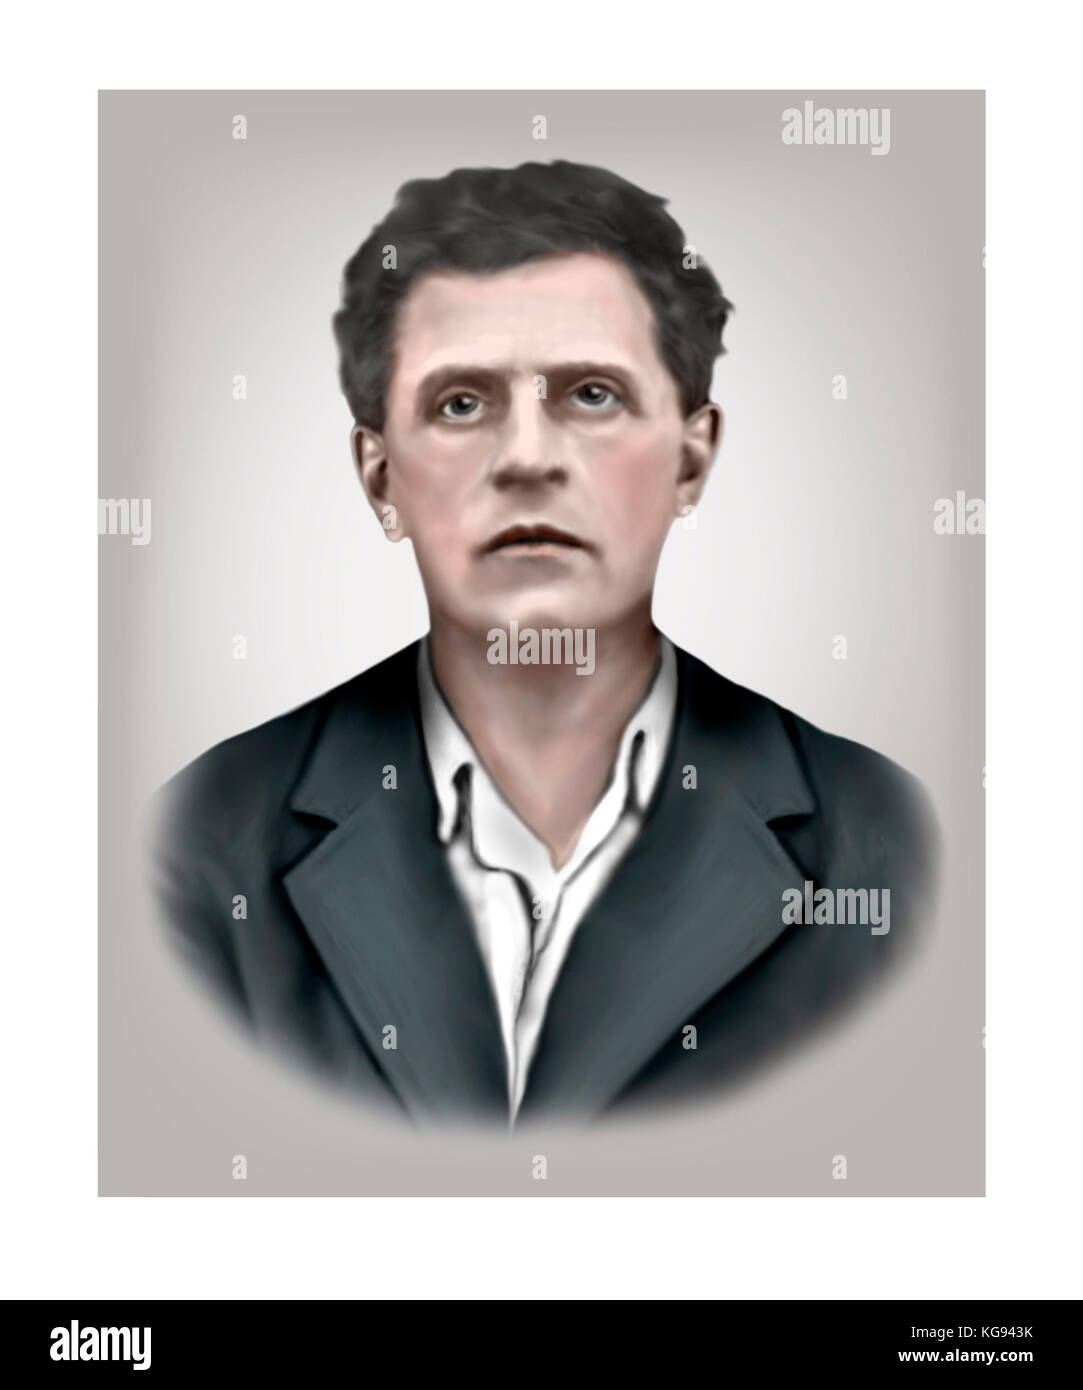 Ludwig Wittgenstein, 1889 - 1951, Austrian British Philosopher - Stock Image